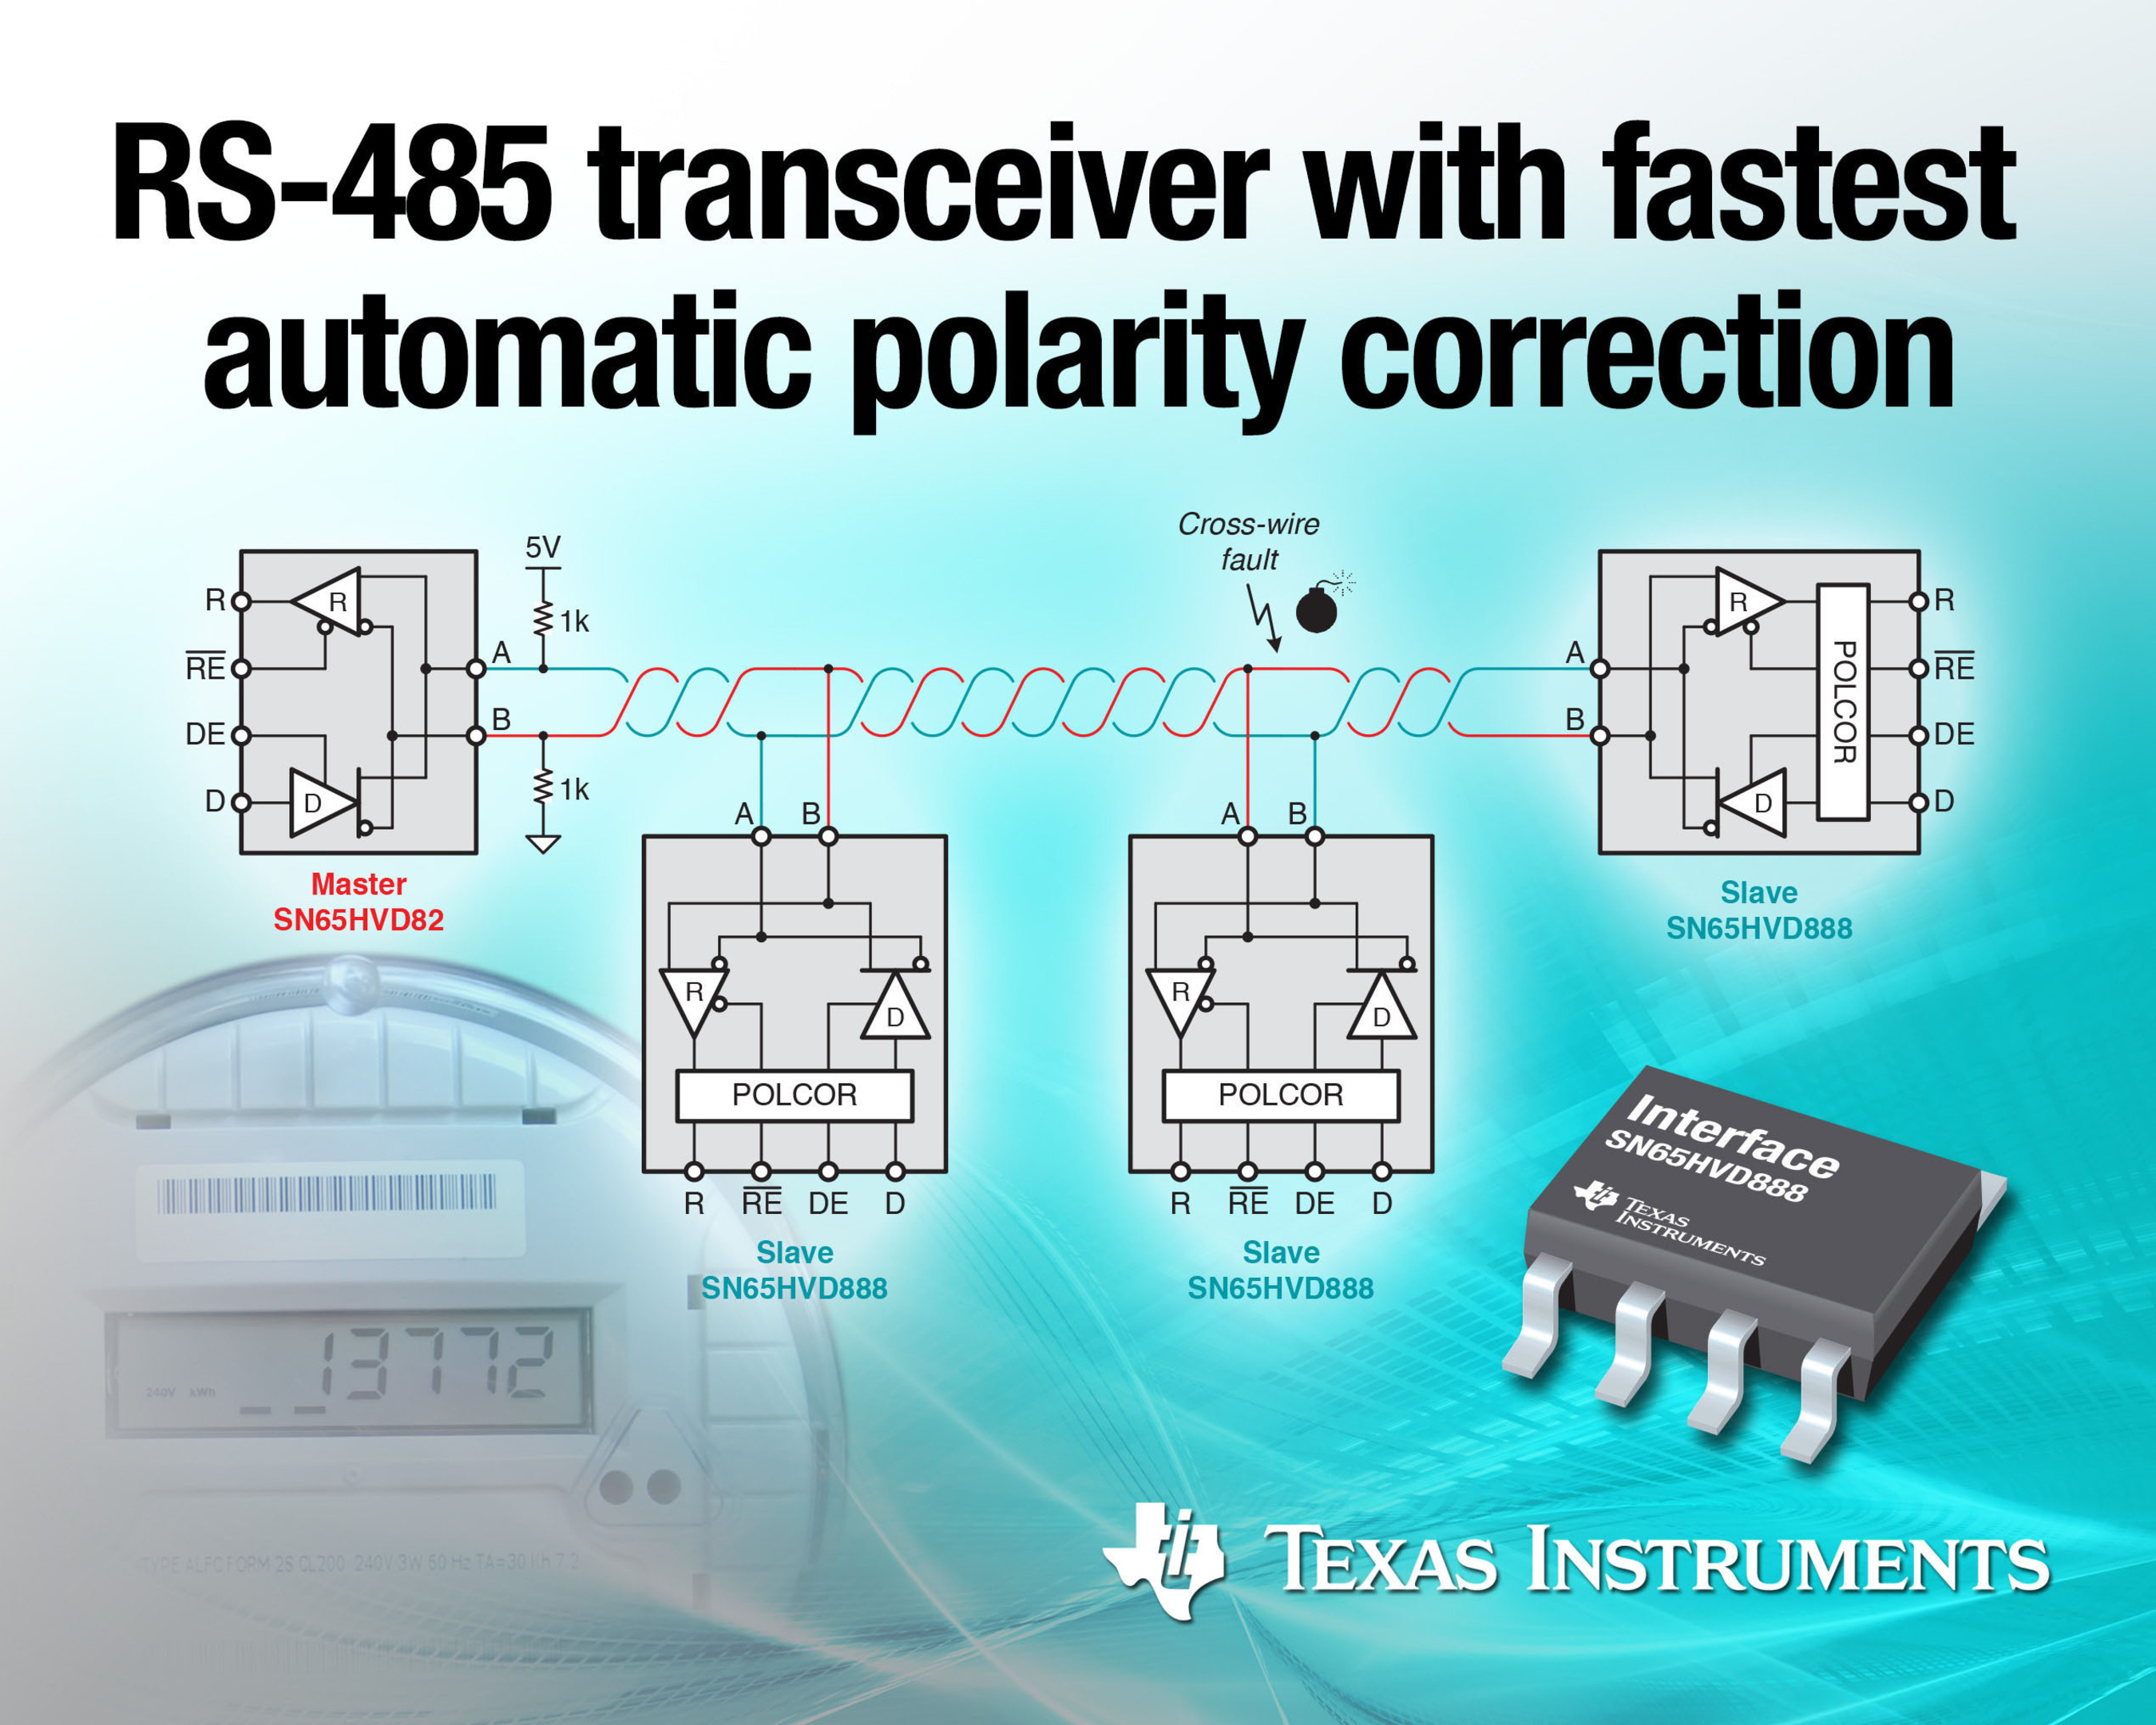 New RS-485 transceiver offers fastest automatic polarity correction.  (PRNewsFoto/Texas Instruments Incorporated)